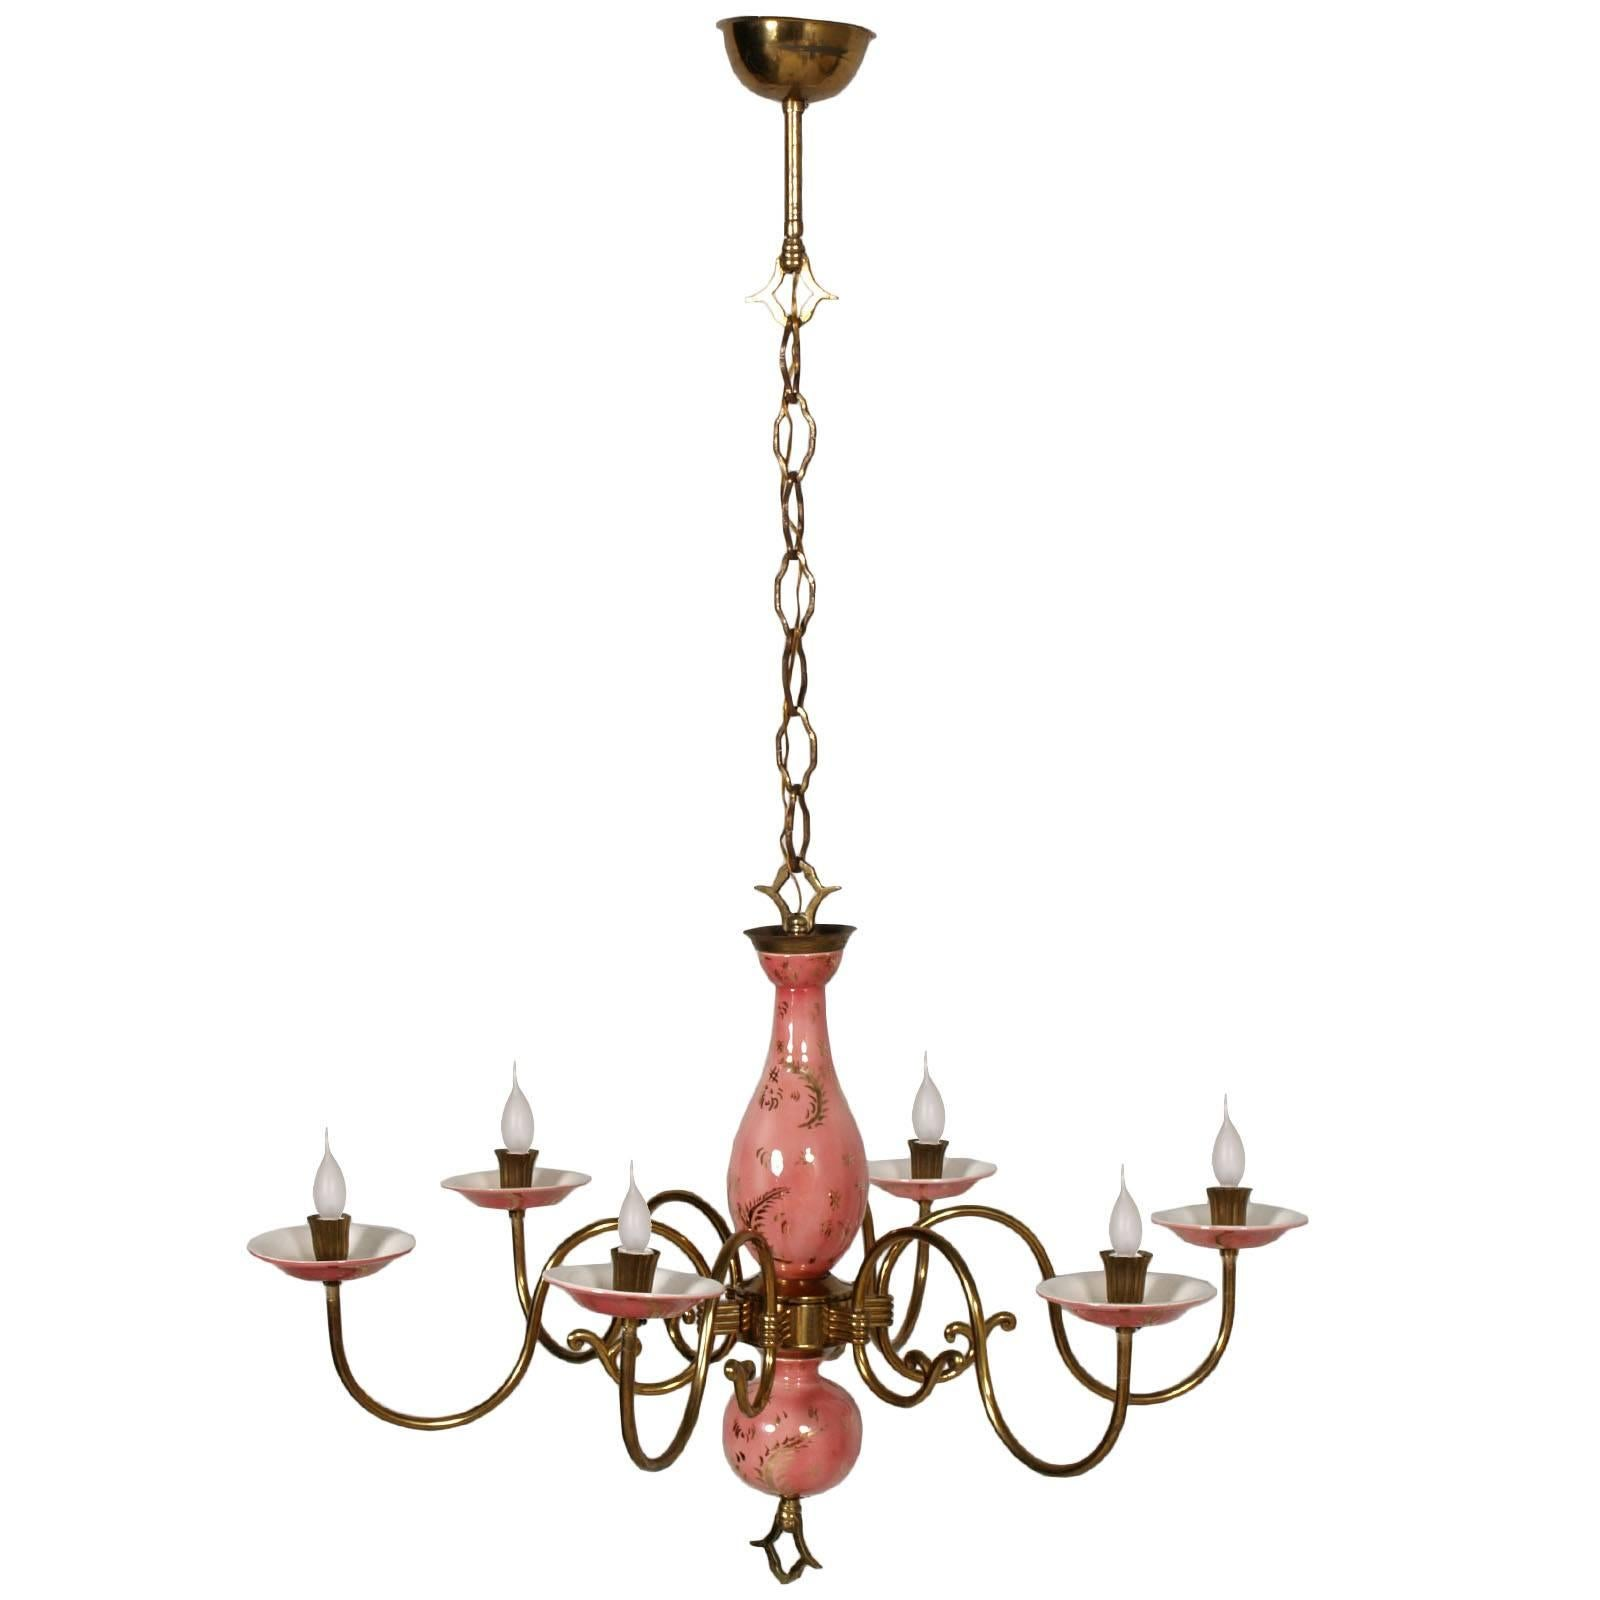 Art deco gilt metal and white and gold glasssix lightcrystal art deco gilt metal and white and gold glasssix lightcrystal teardrop chandelier for sale at 1stdibs arubaitofo Gallery